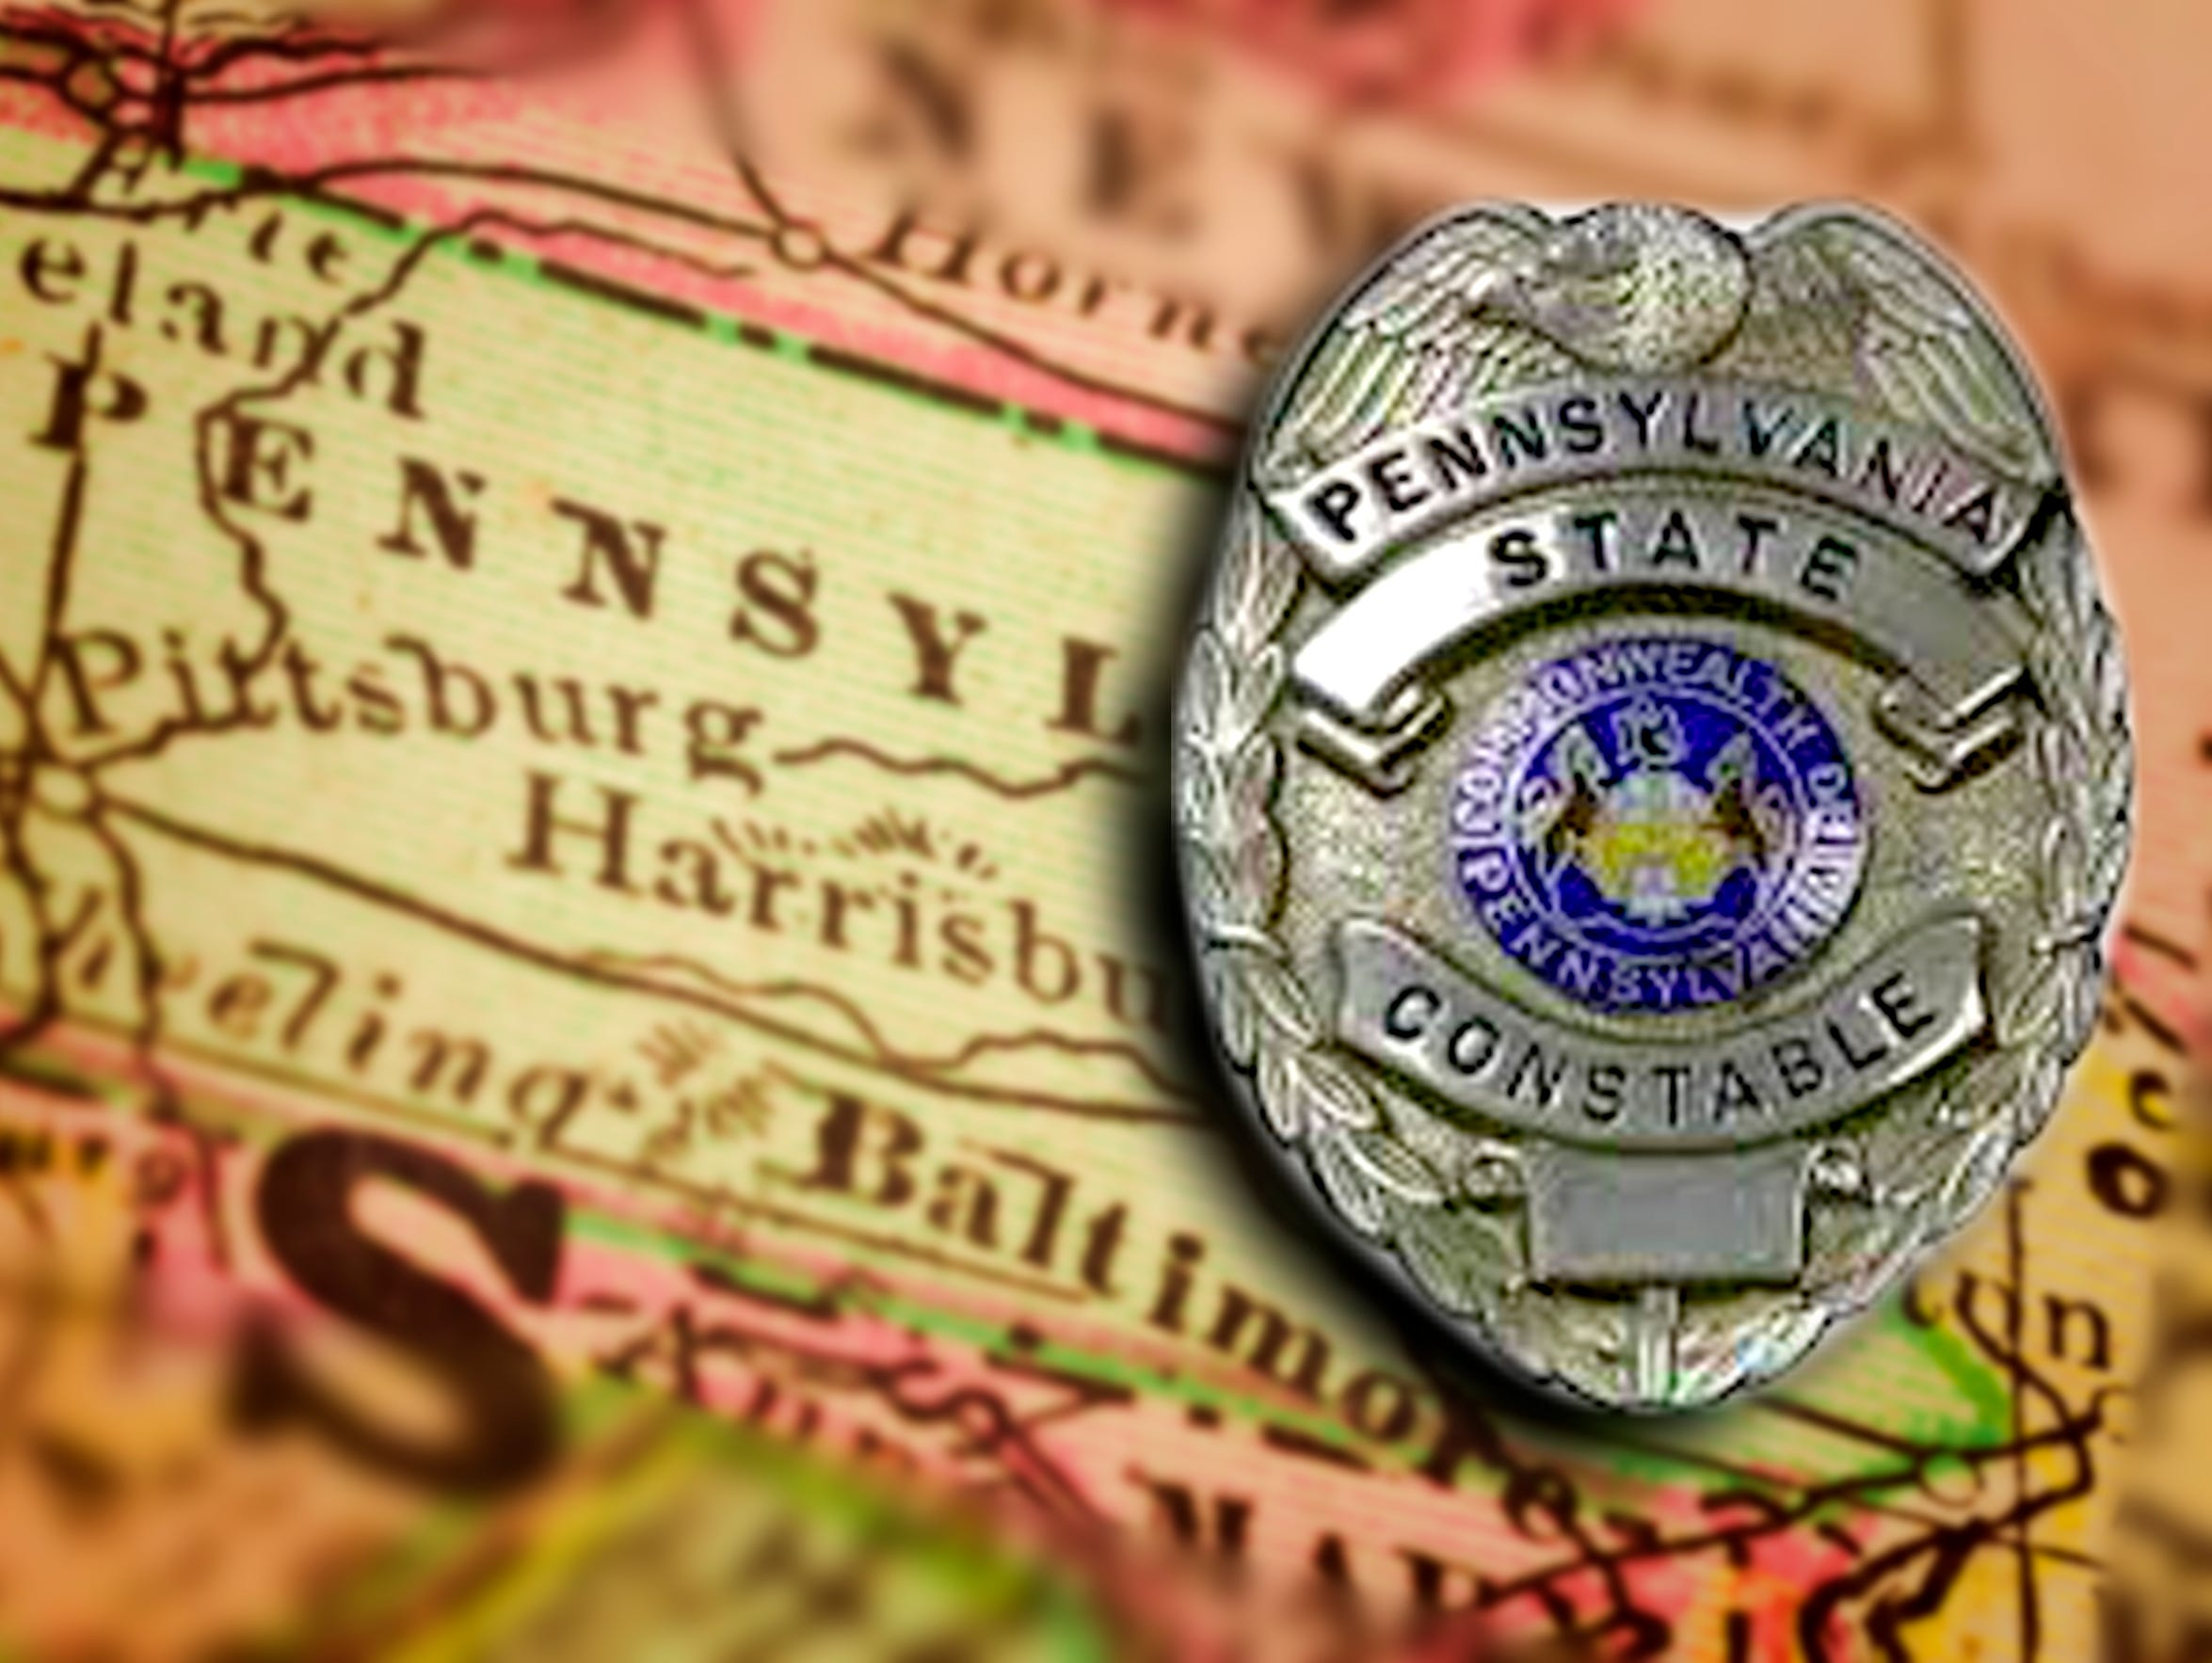 Constables have statewide authority to execute arrest